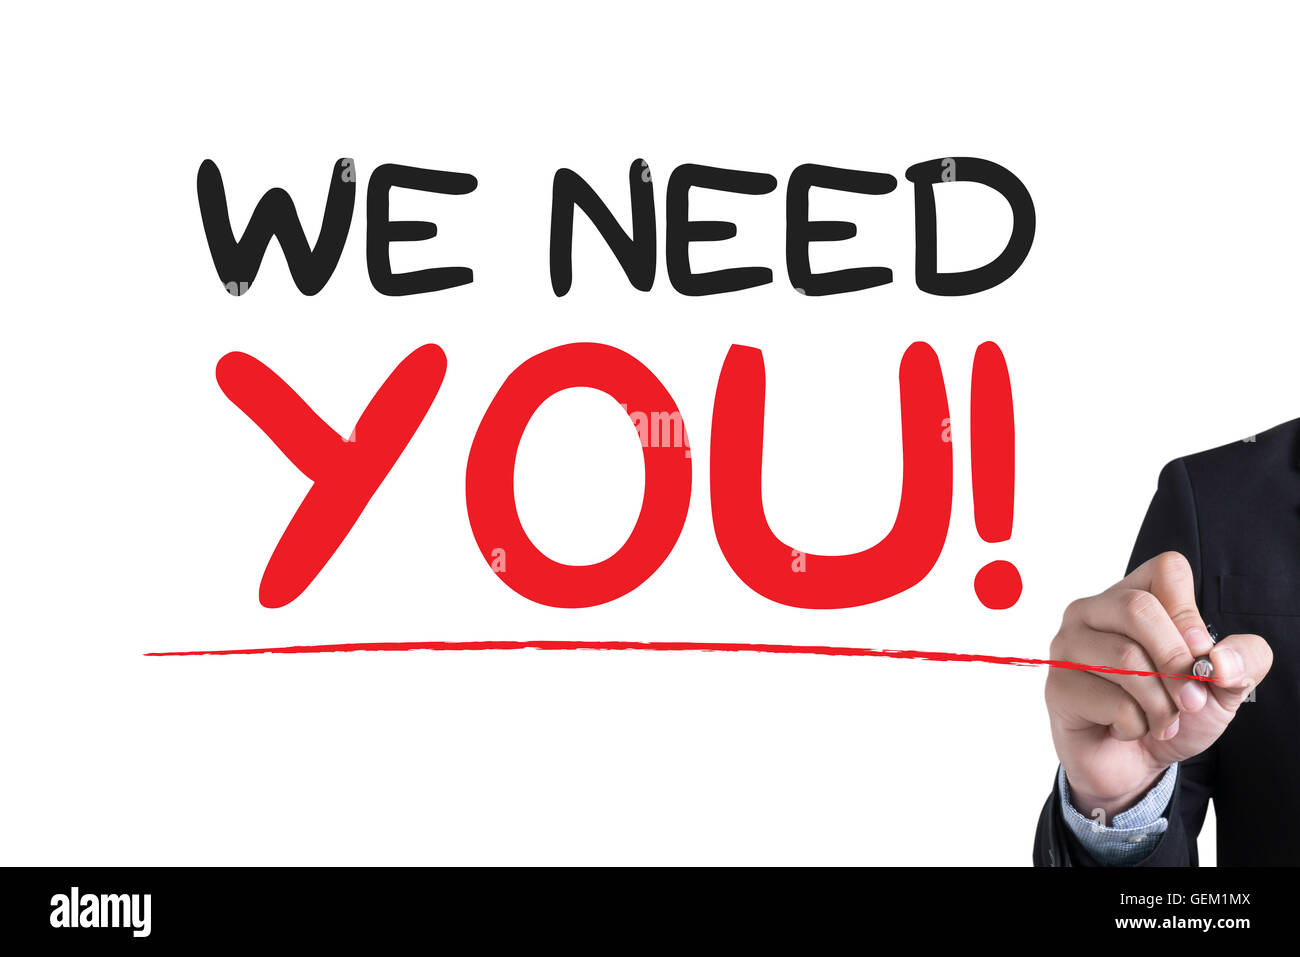 WE NEED YOU!  Businessman hand writing with black marker on white background - Stock Image